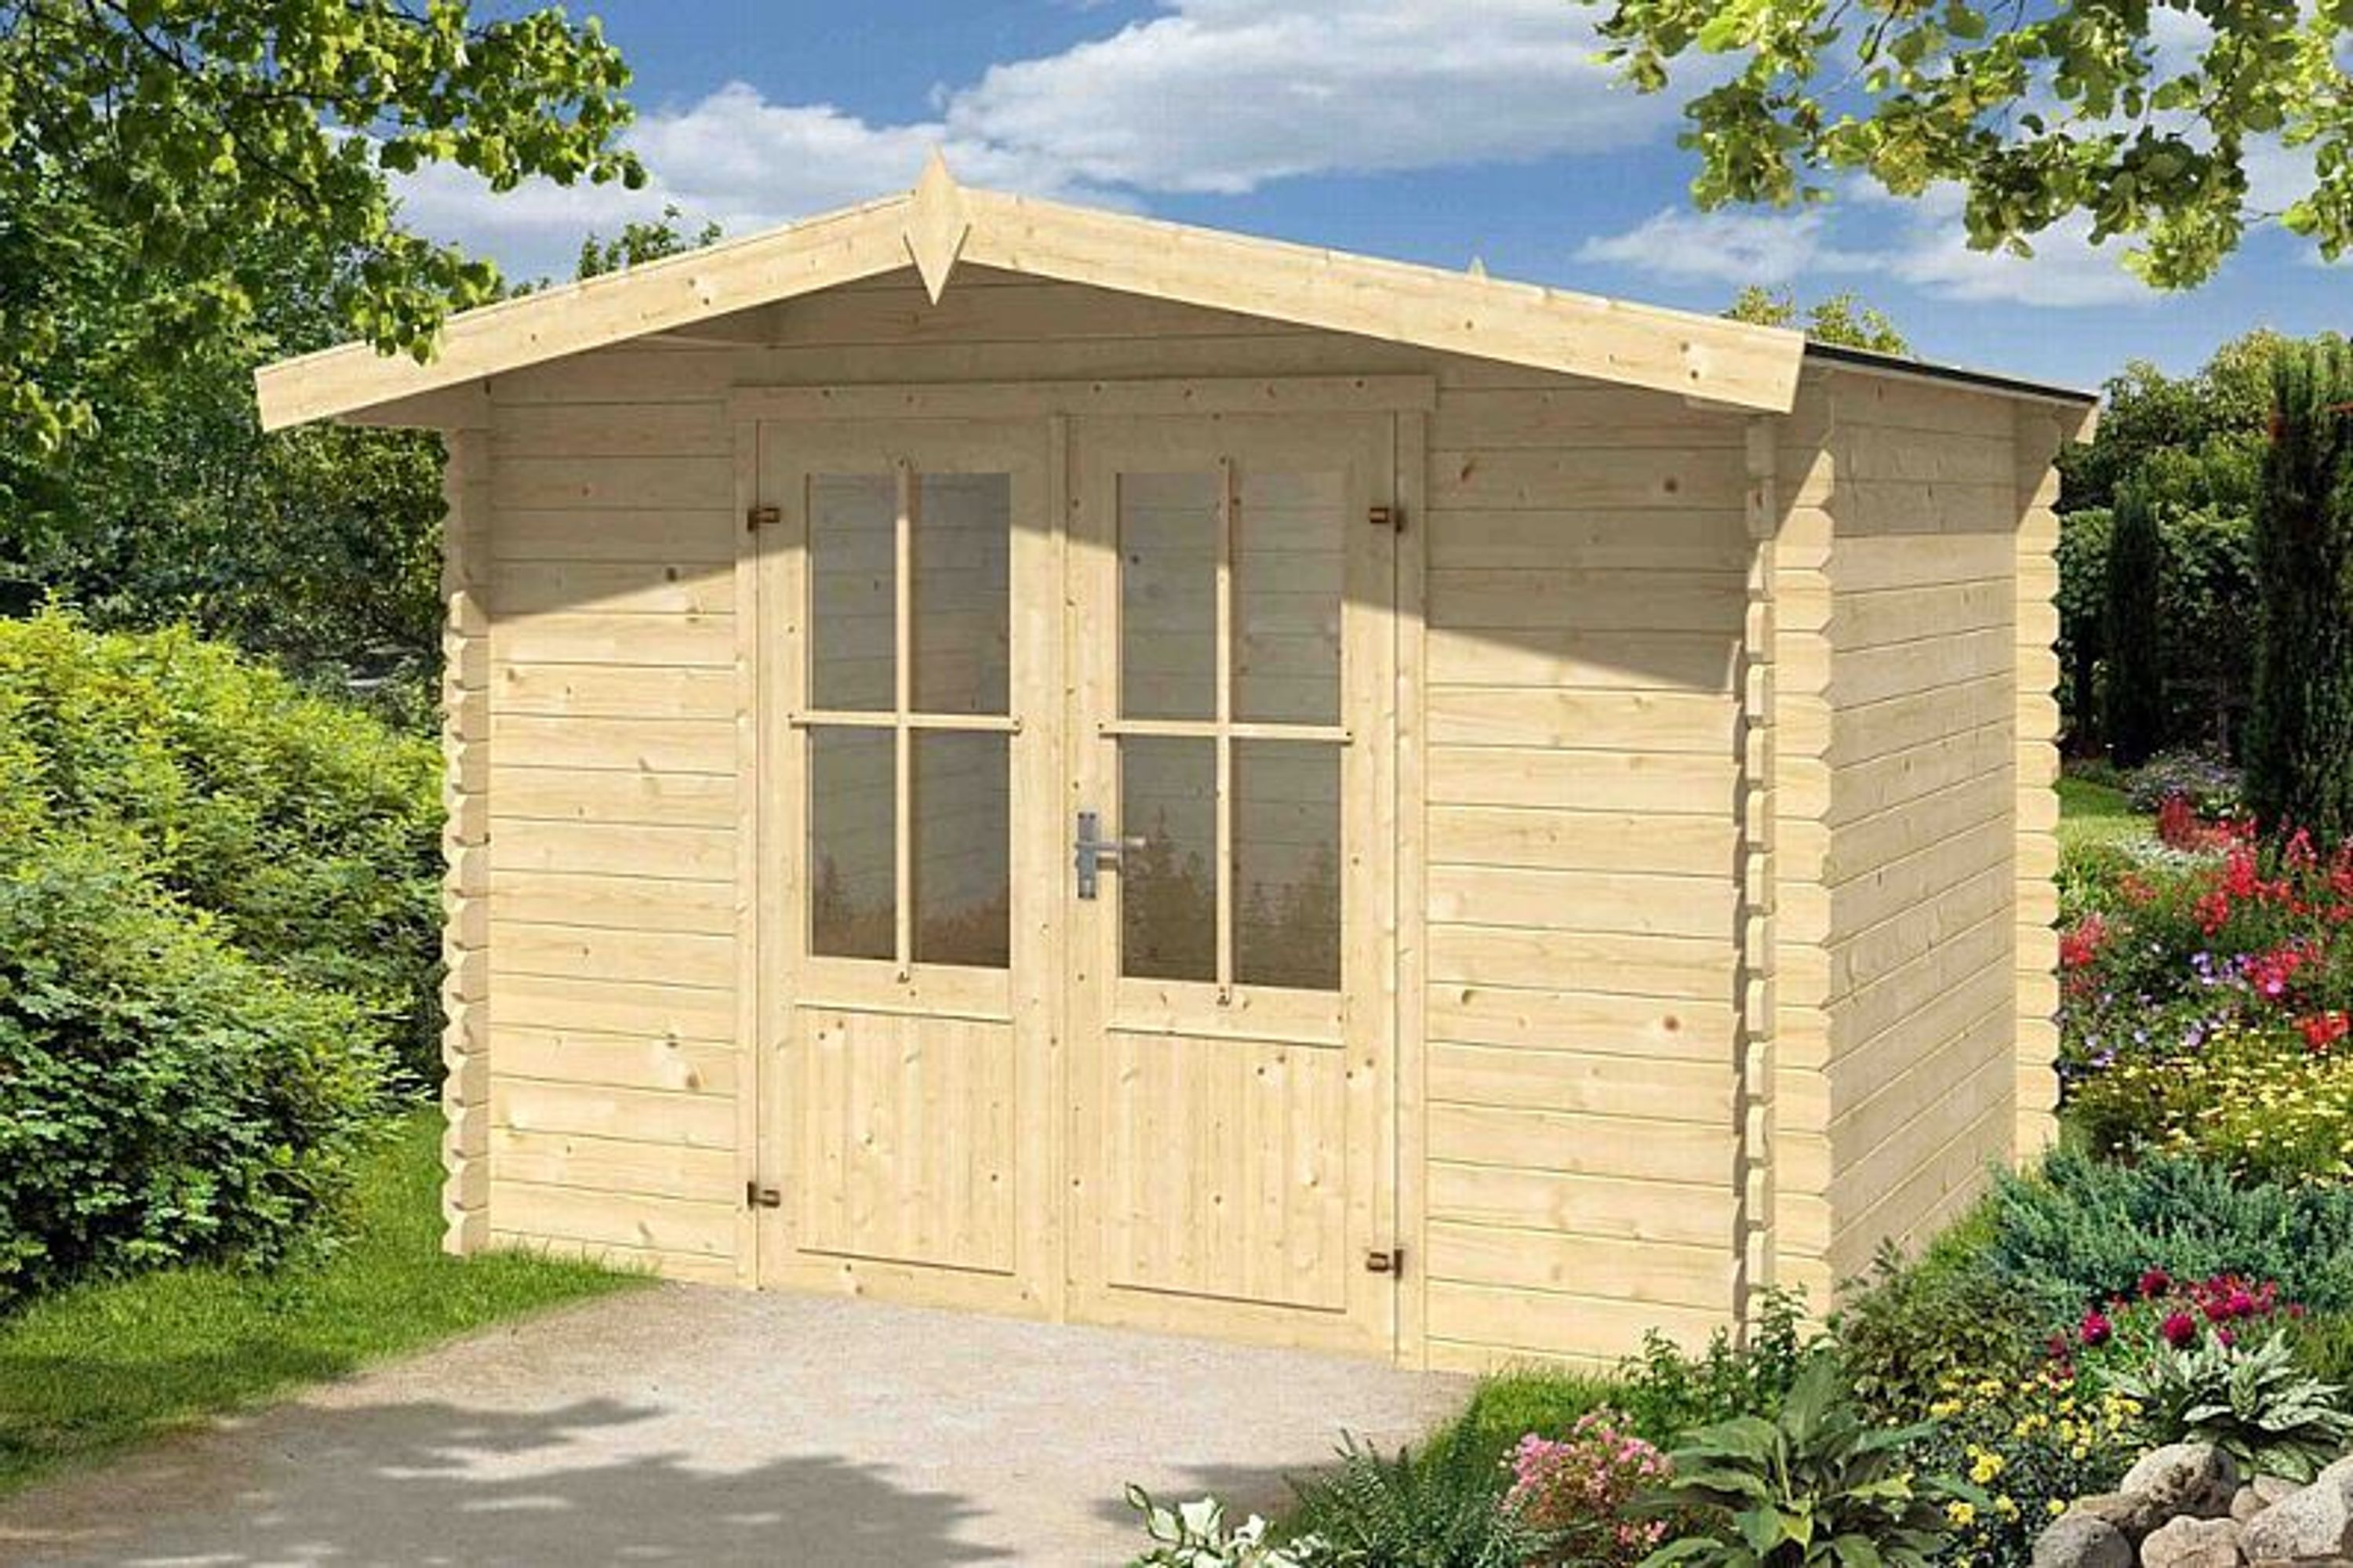 gartenhaus hinnie ca 300x250 cm schuppen ger tehaus blockhaus qualit t holz 28 mm kaufen bei. Black Bedroom Furniture Sets. Home Design Ideas